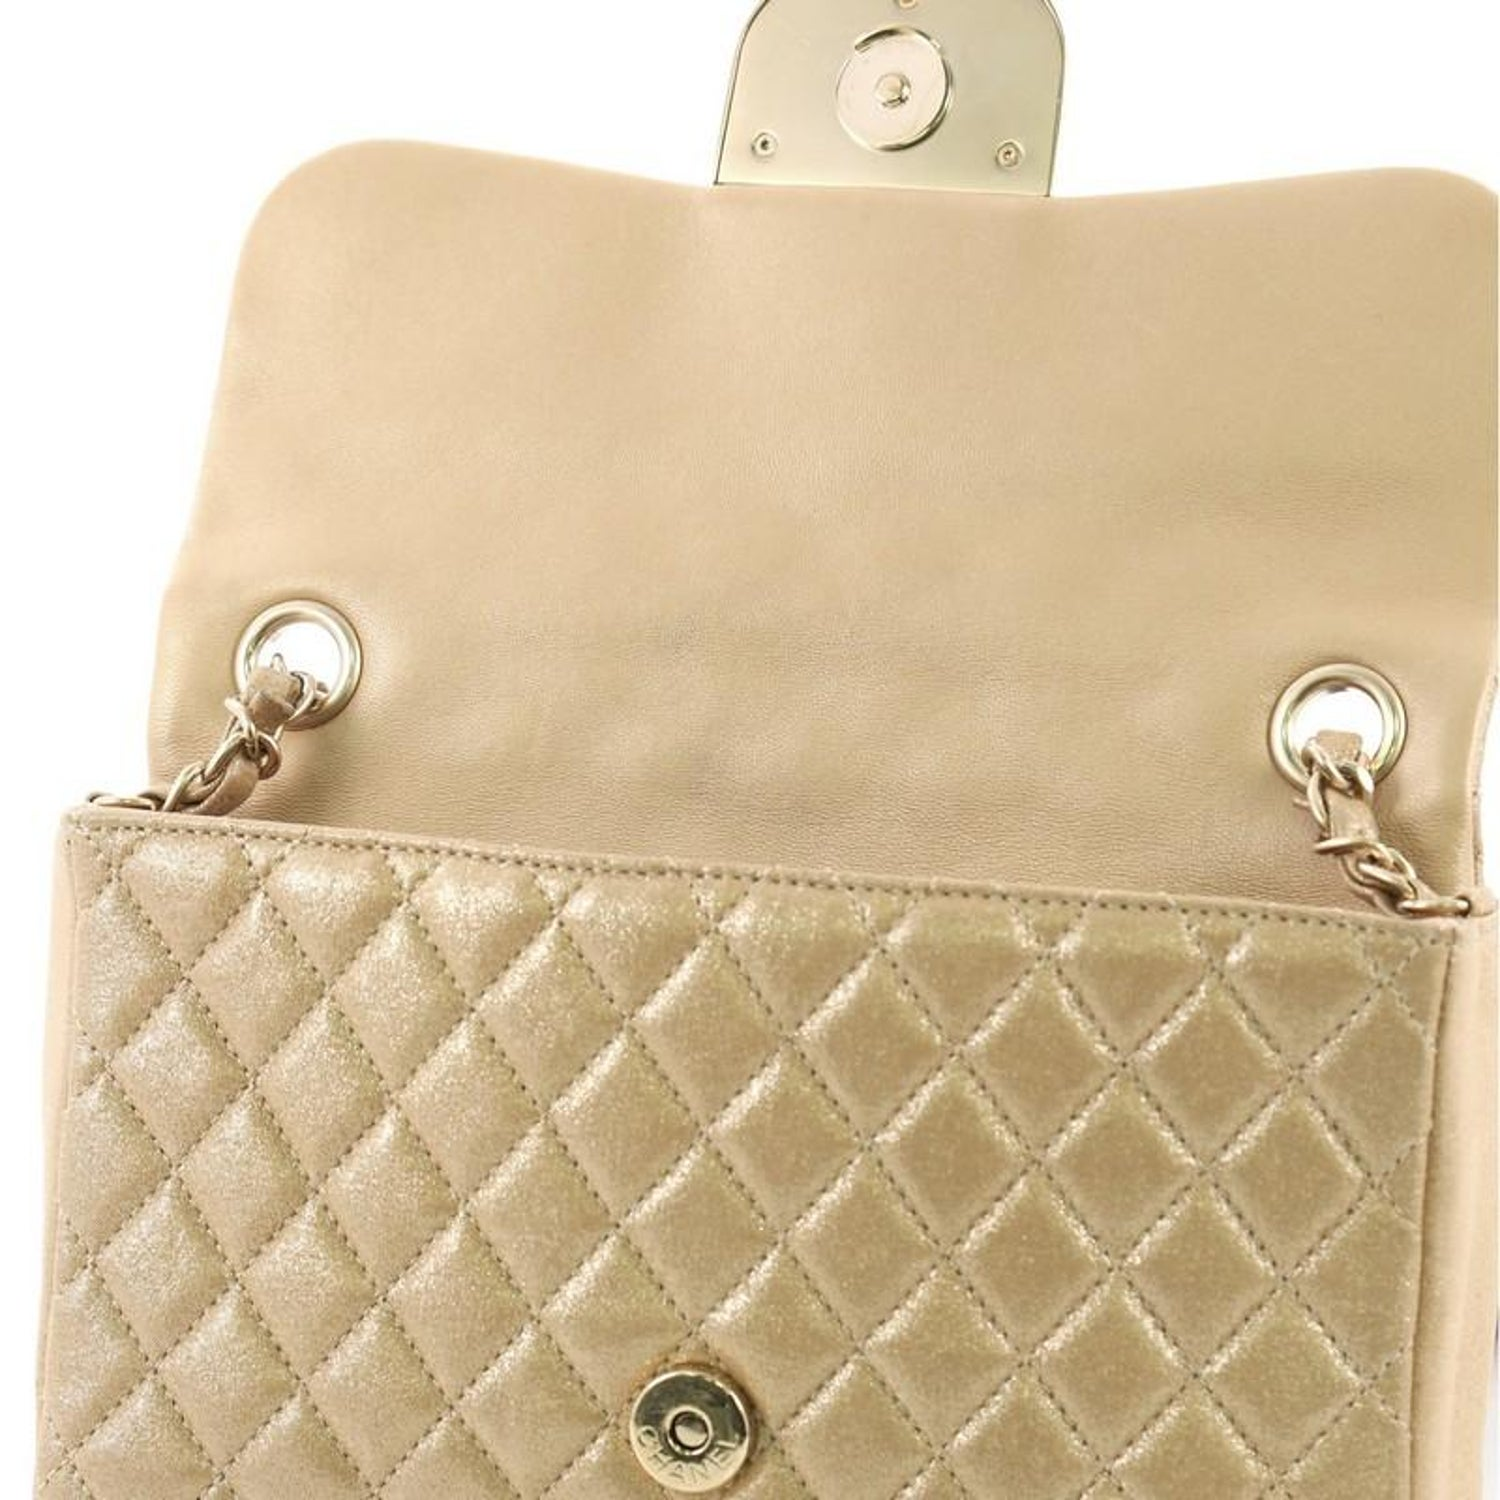 b46eef7498b026 Chanel Pearl CC Crystal Flap Bag Quilted Iridescent Fabric Sma For Sale at  1stdibs